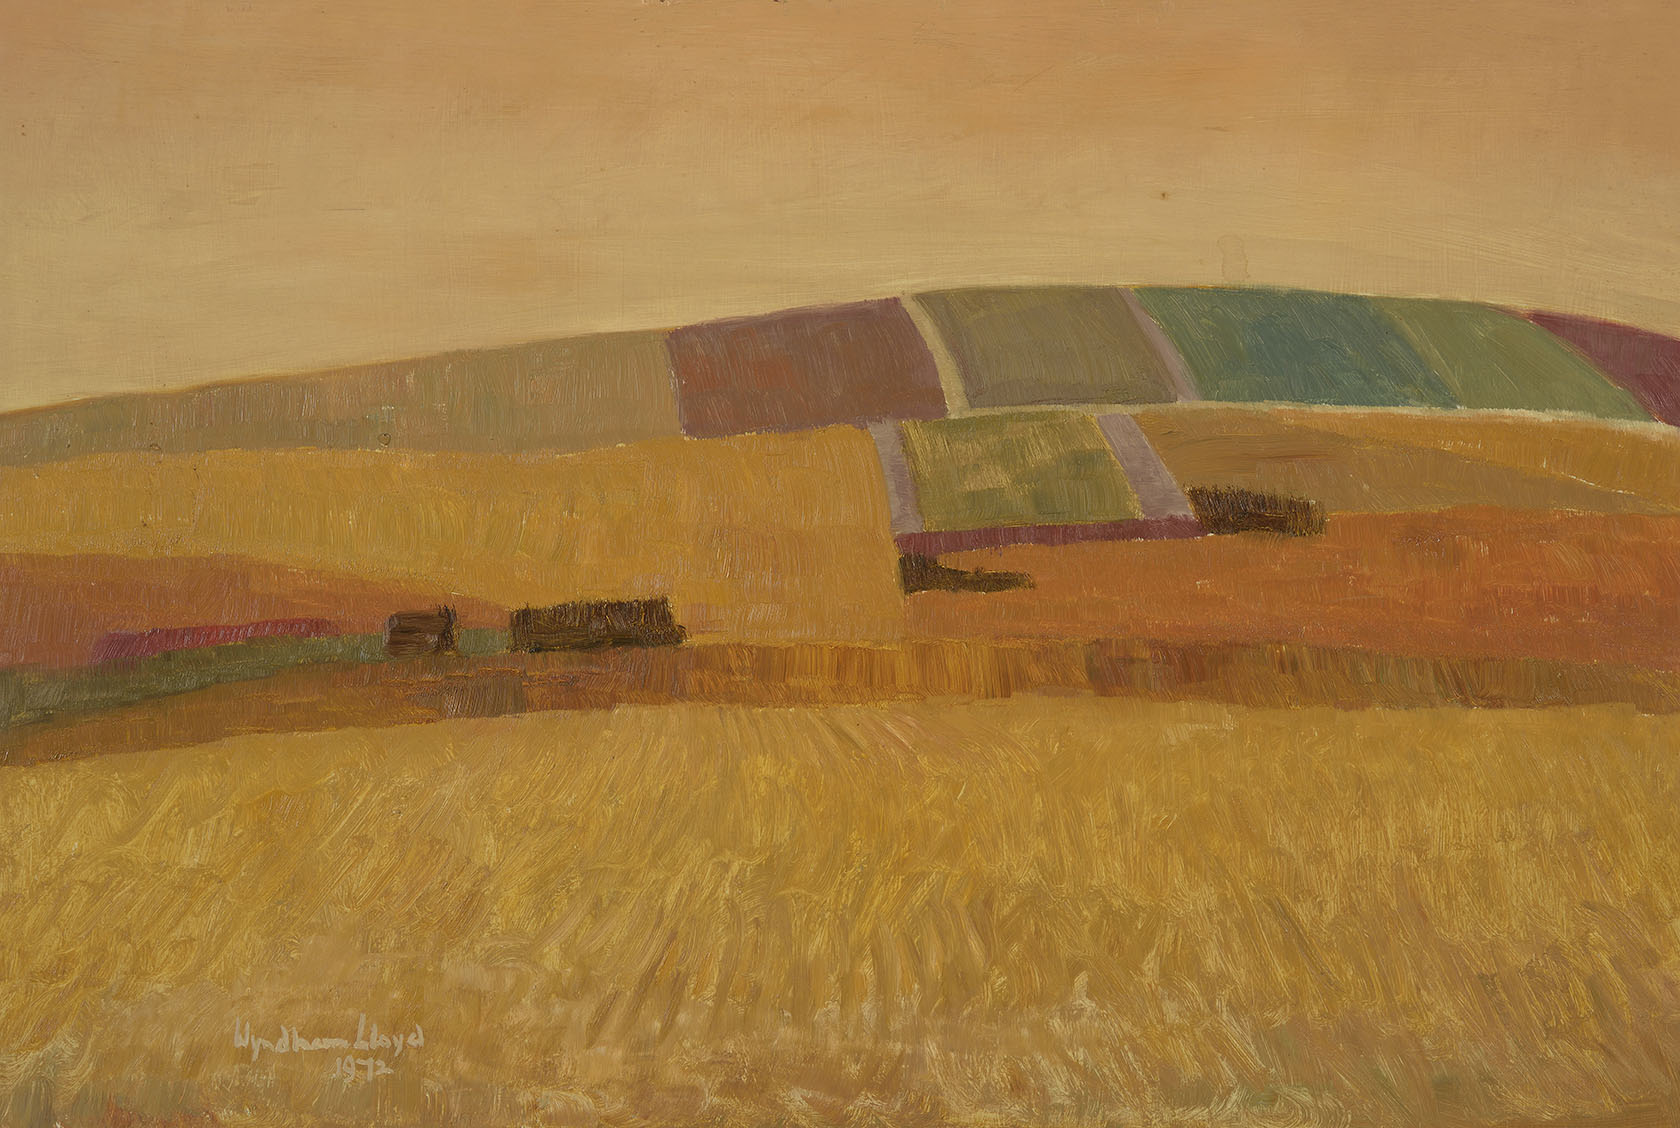 Wyndham Lloyd (1909-1997)    Pattern of Fields,  1972, Oil on board, 21 x 30 ¼ in, Signed and dated  [CAS 22] Acquired in 1973